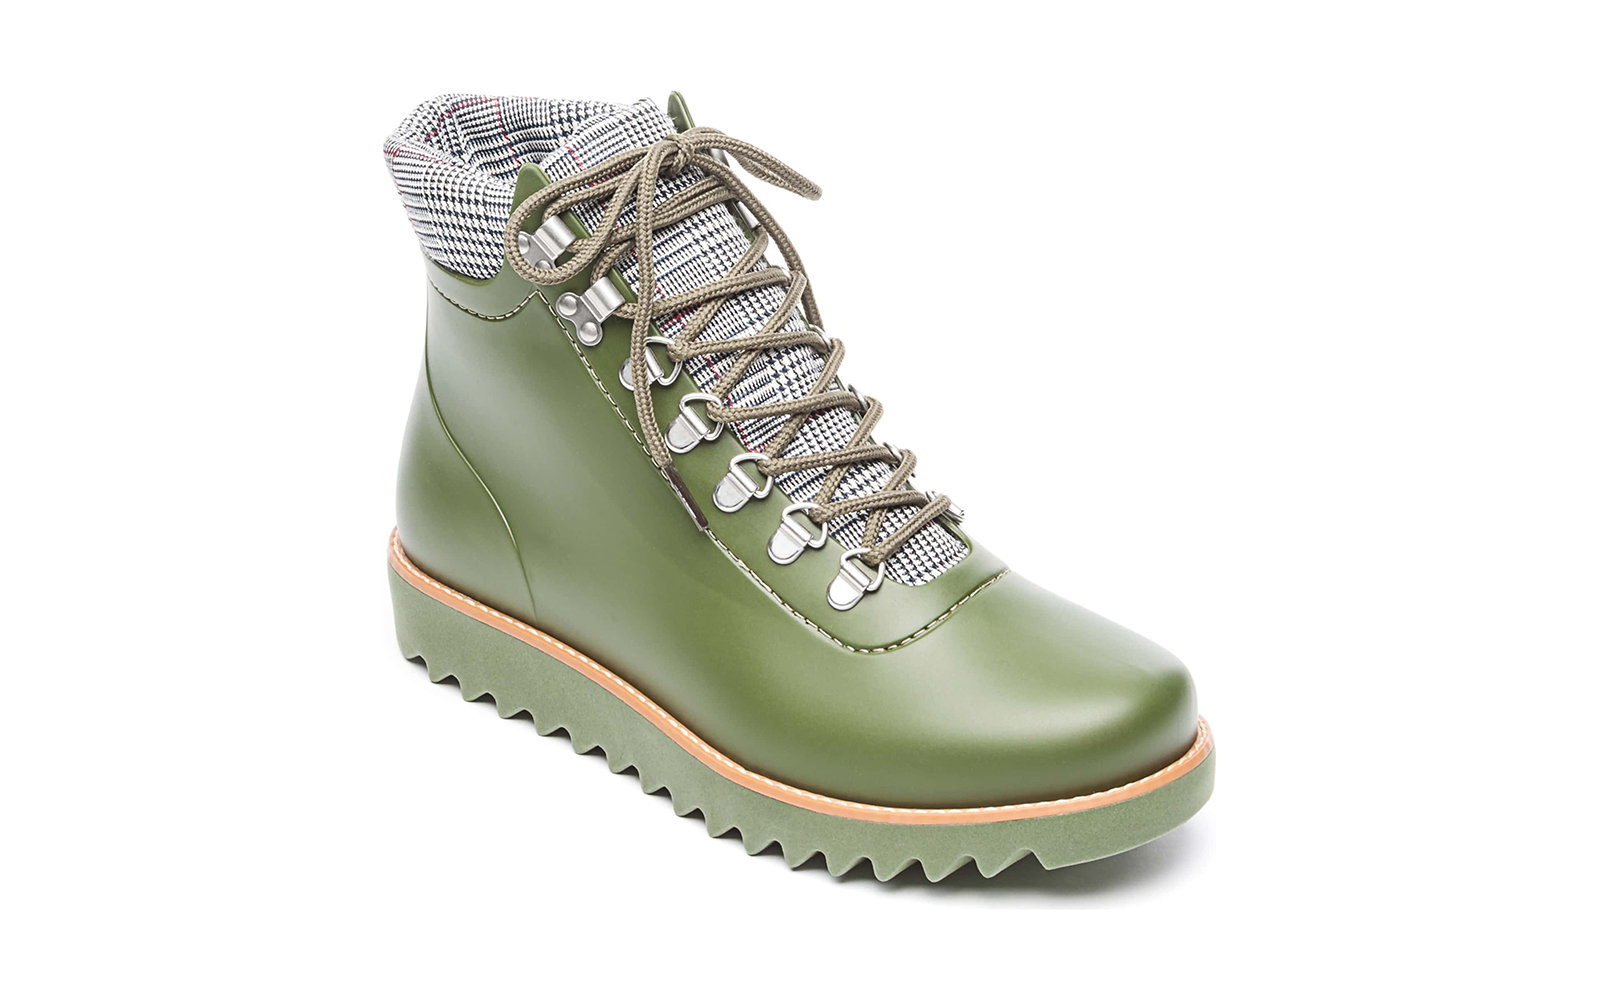 b20a5c198c01 The Best Waterproof Walking Shoes for Women